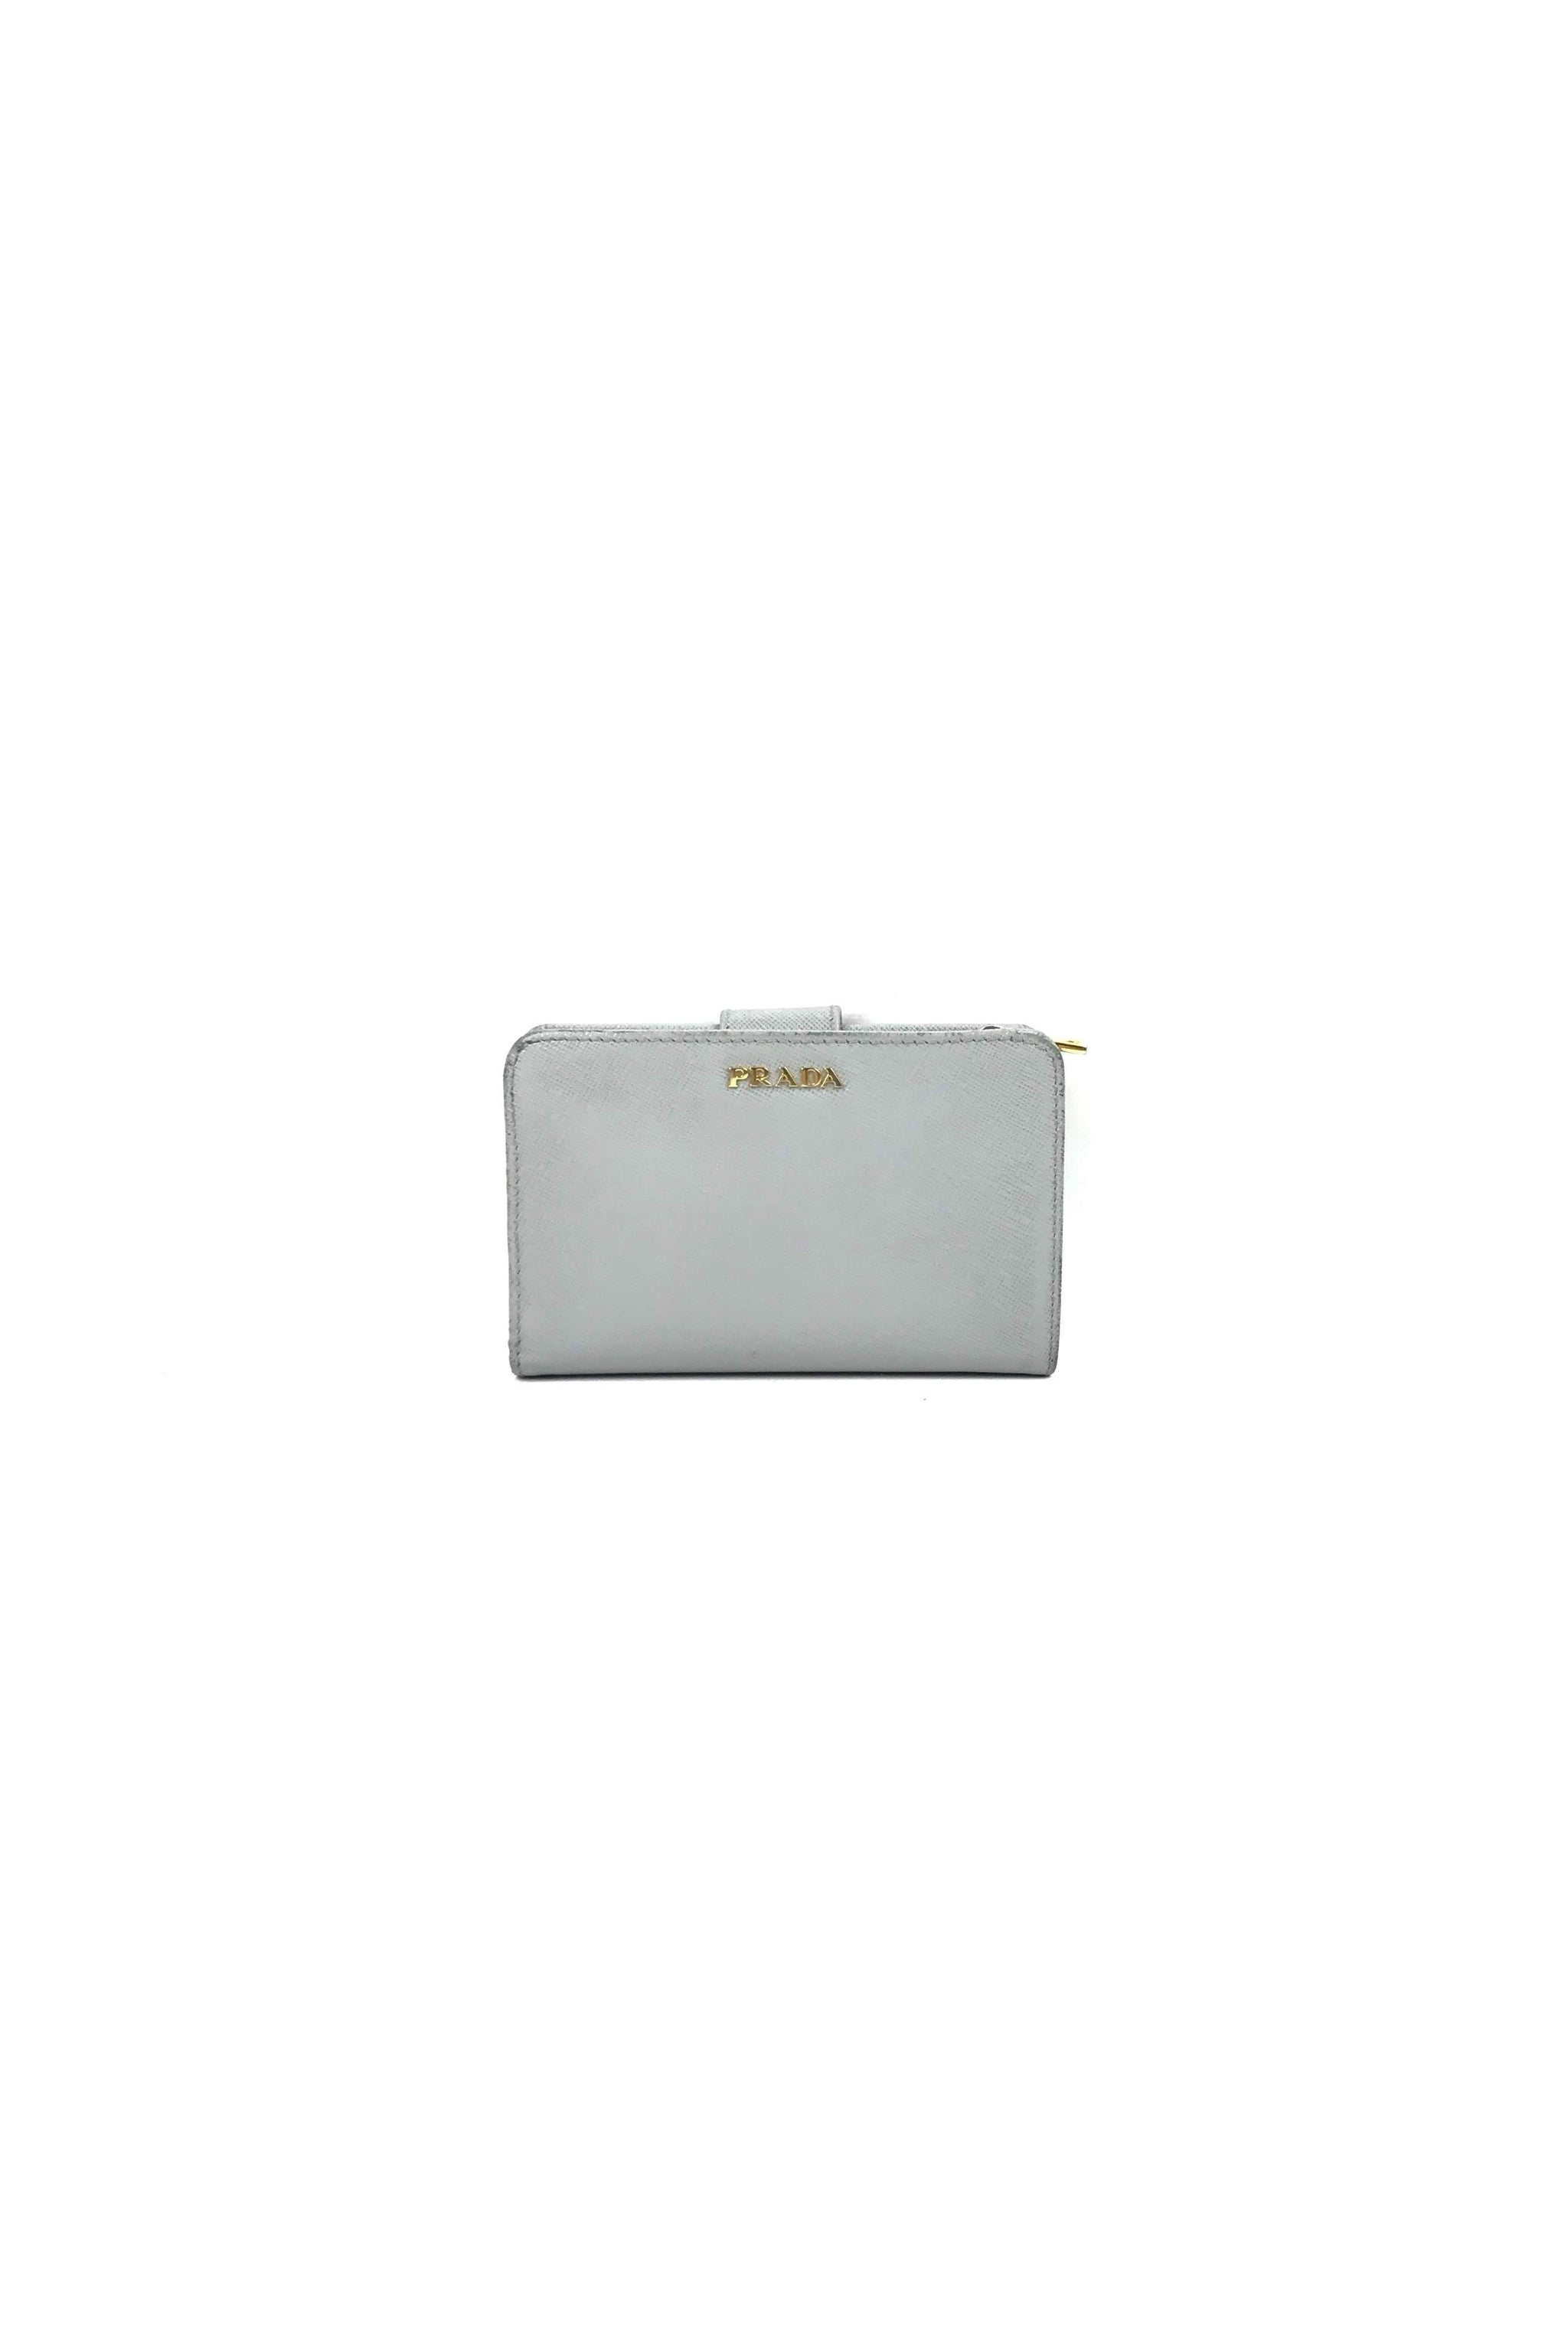 93ac07aaa34f Grey White Saffiano Leather French Purse Wallet W  GHW